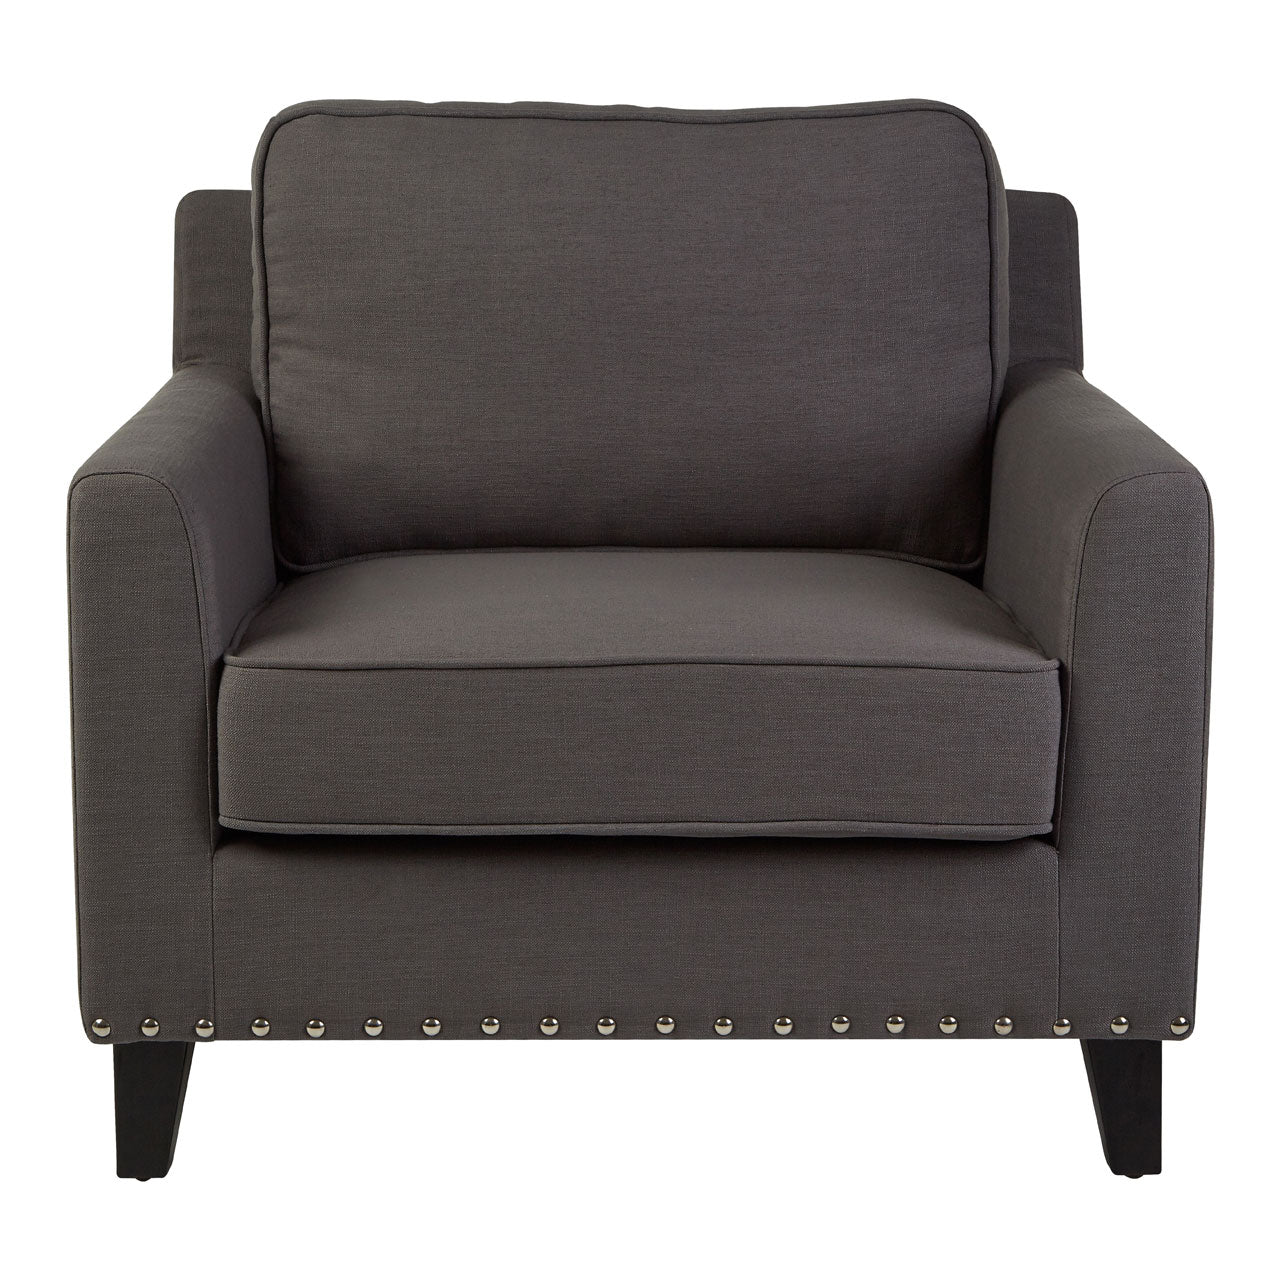 Regents Park Stud Chair in Grey